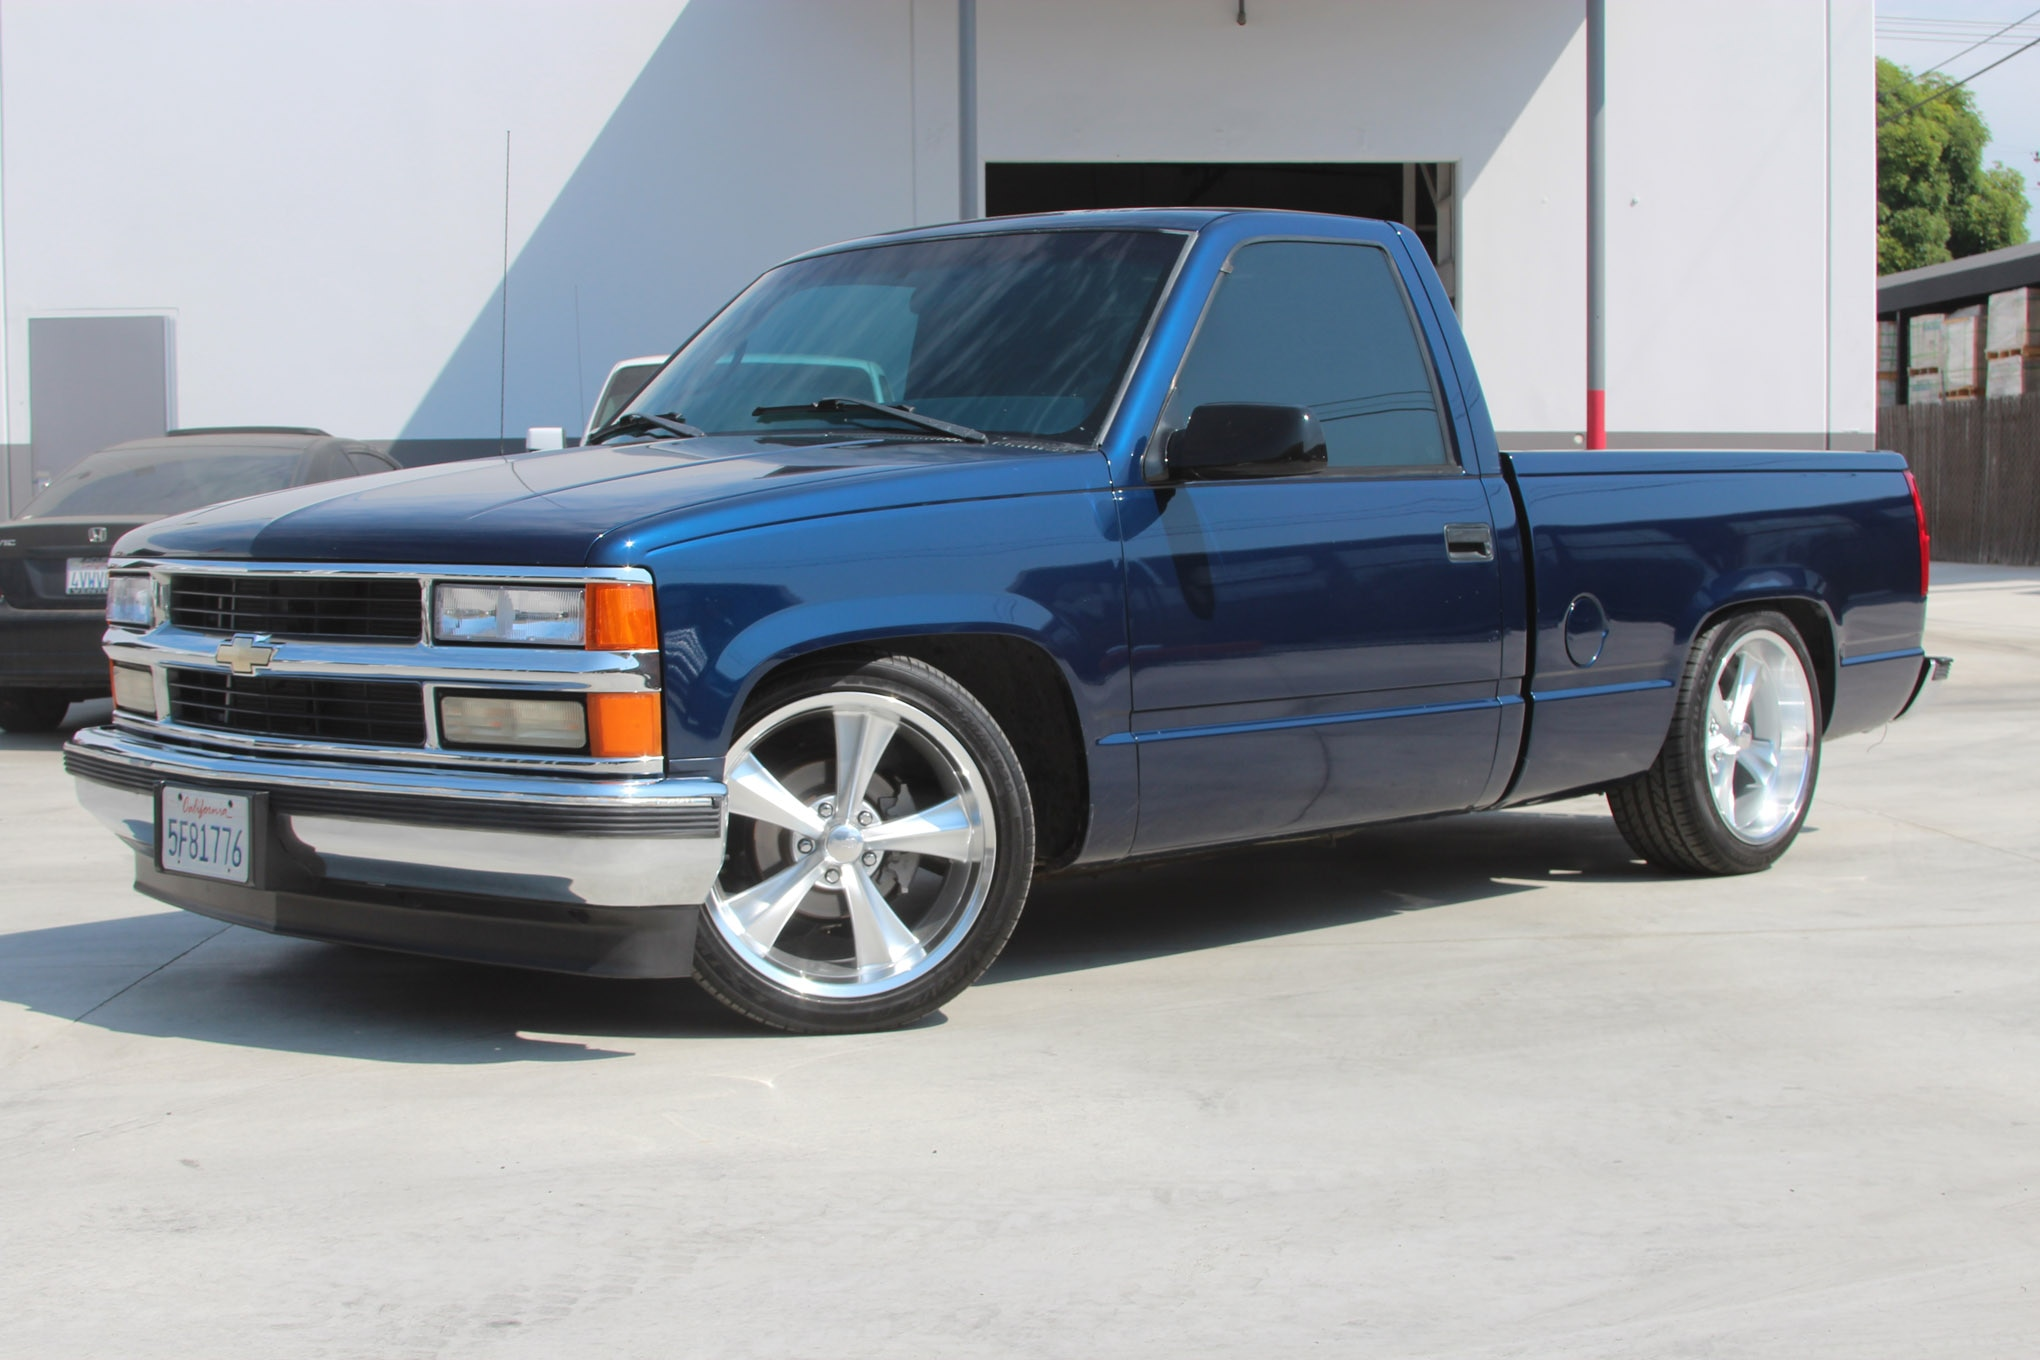 1996 Chevy C1500 Back To Basics